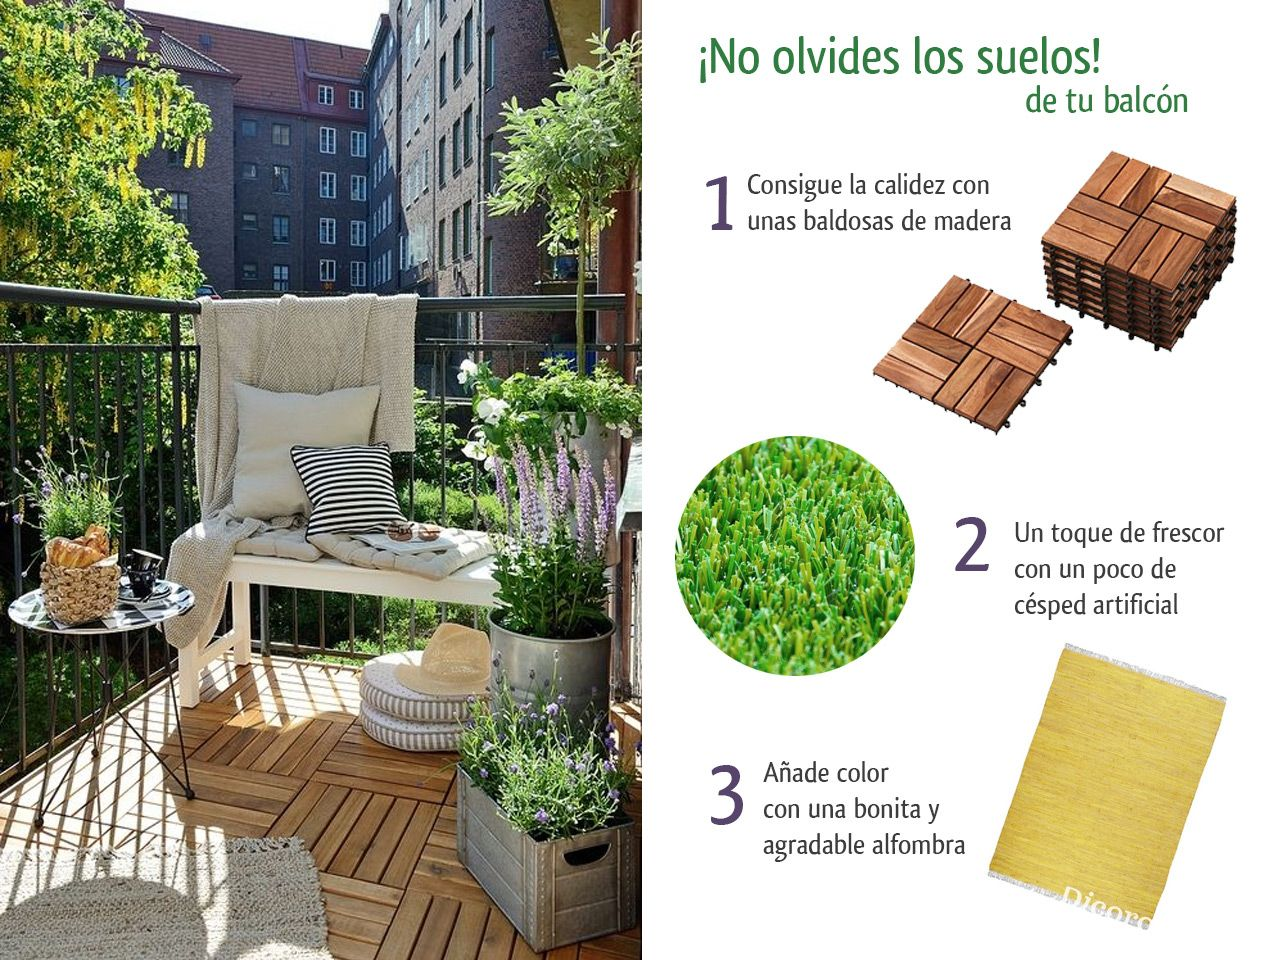 5 consejos para decorar balcones peque os con encanto house for Decoracion balcones pequenos